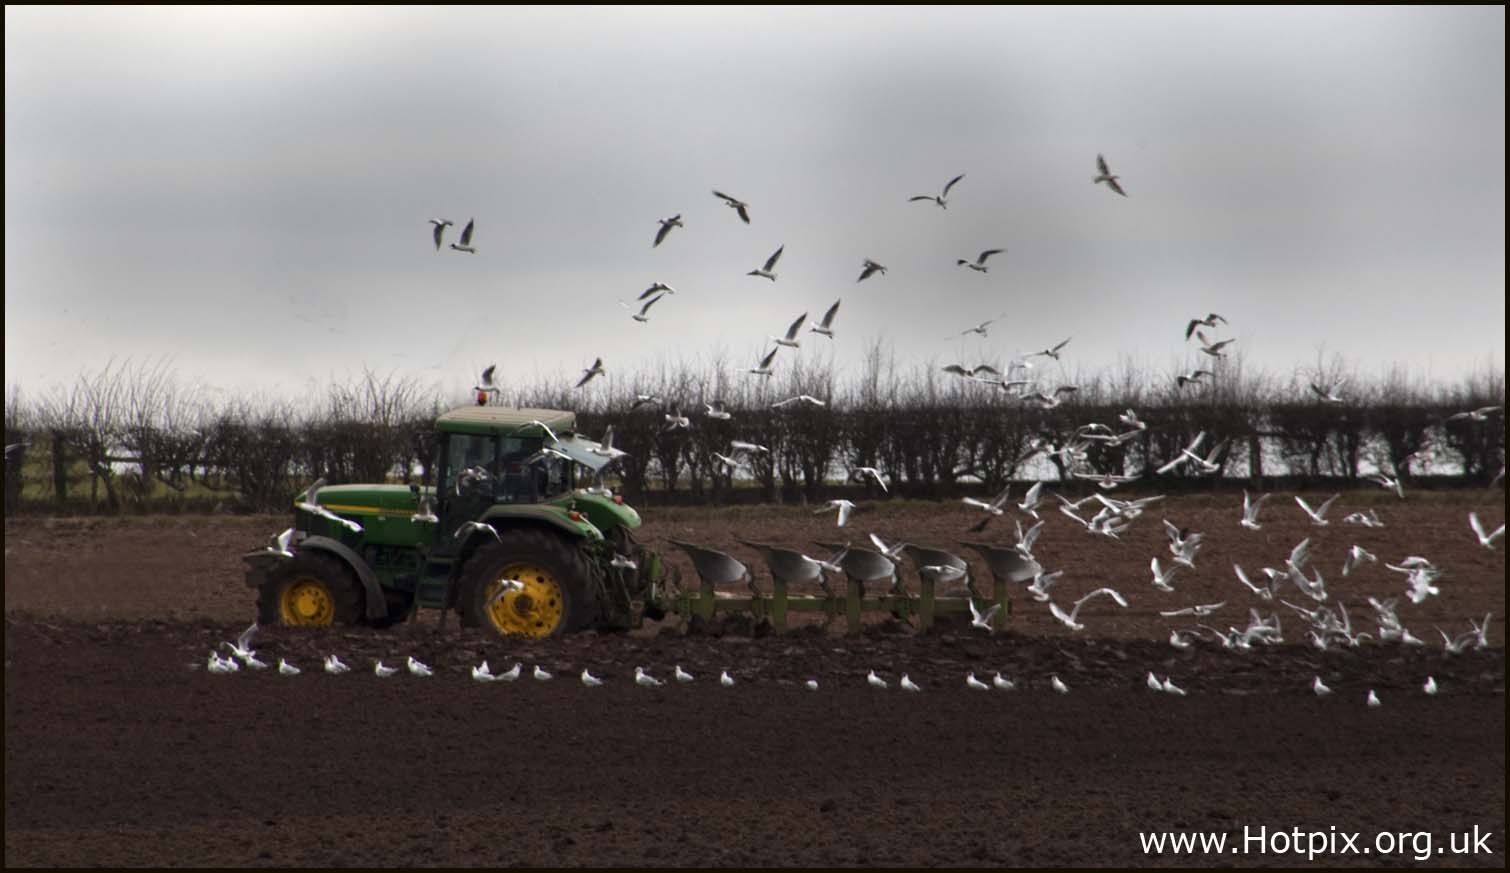 tractor,field,plough,ploughing,lymm,a56,village,cheshire,north,west,uk,england,brown,birds,following,gulls,fly,flying,hotpics,hotpic,hotpick,hotpicks,highway,road,hotpix!